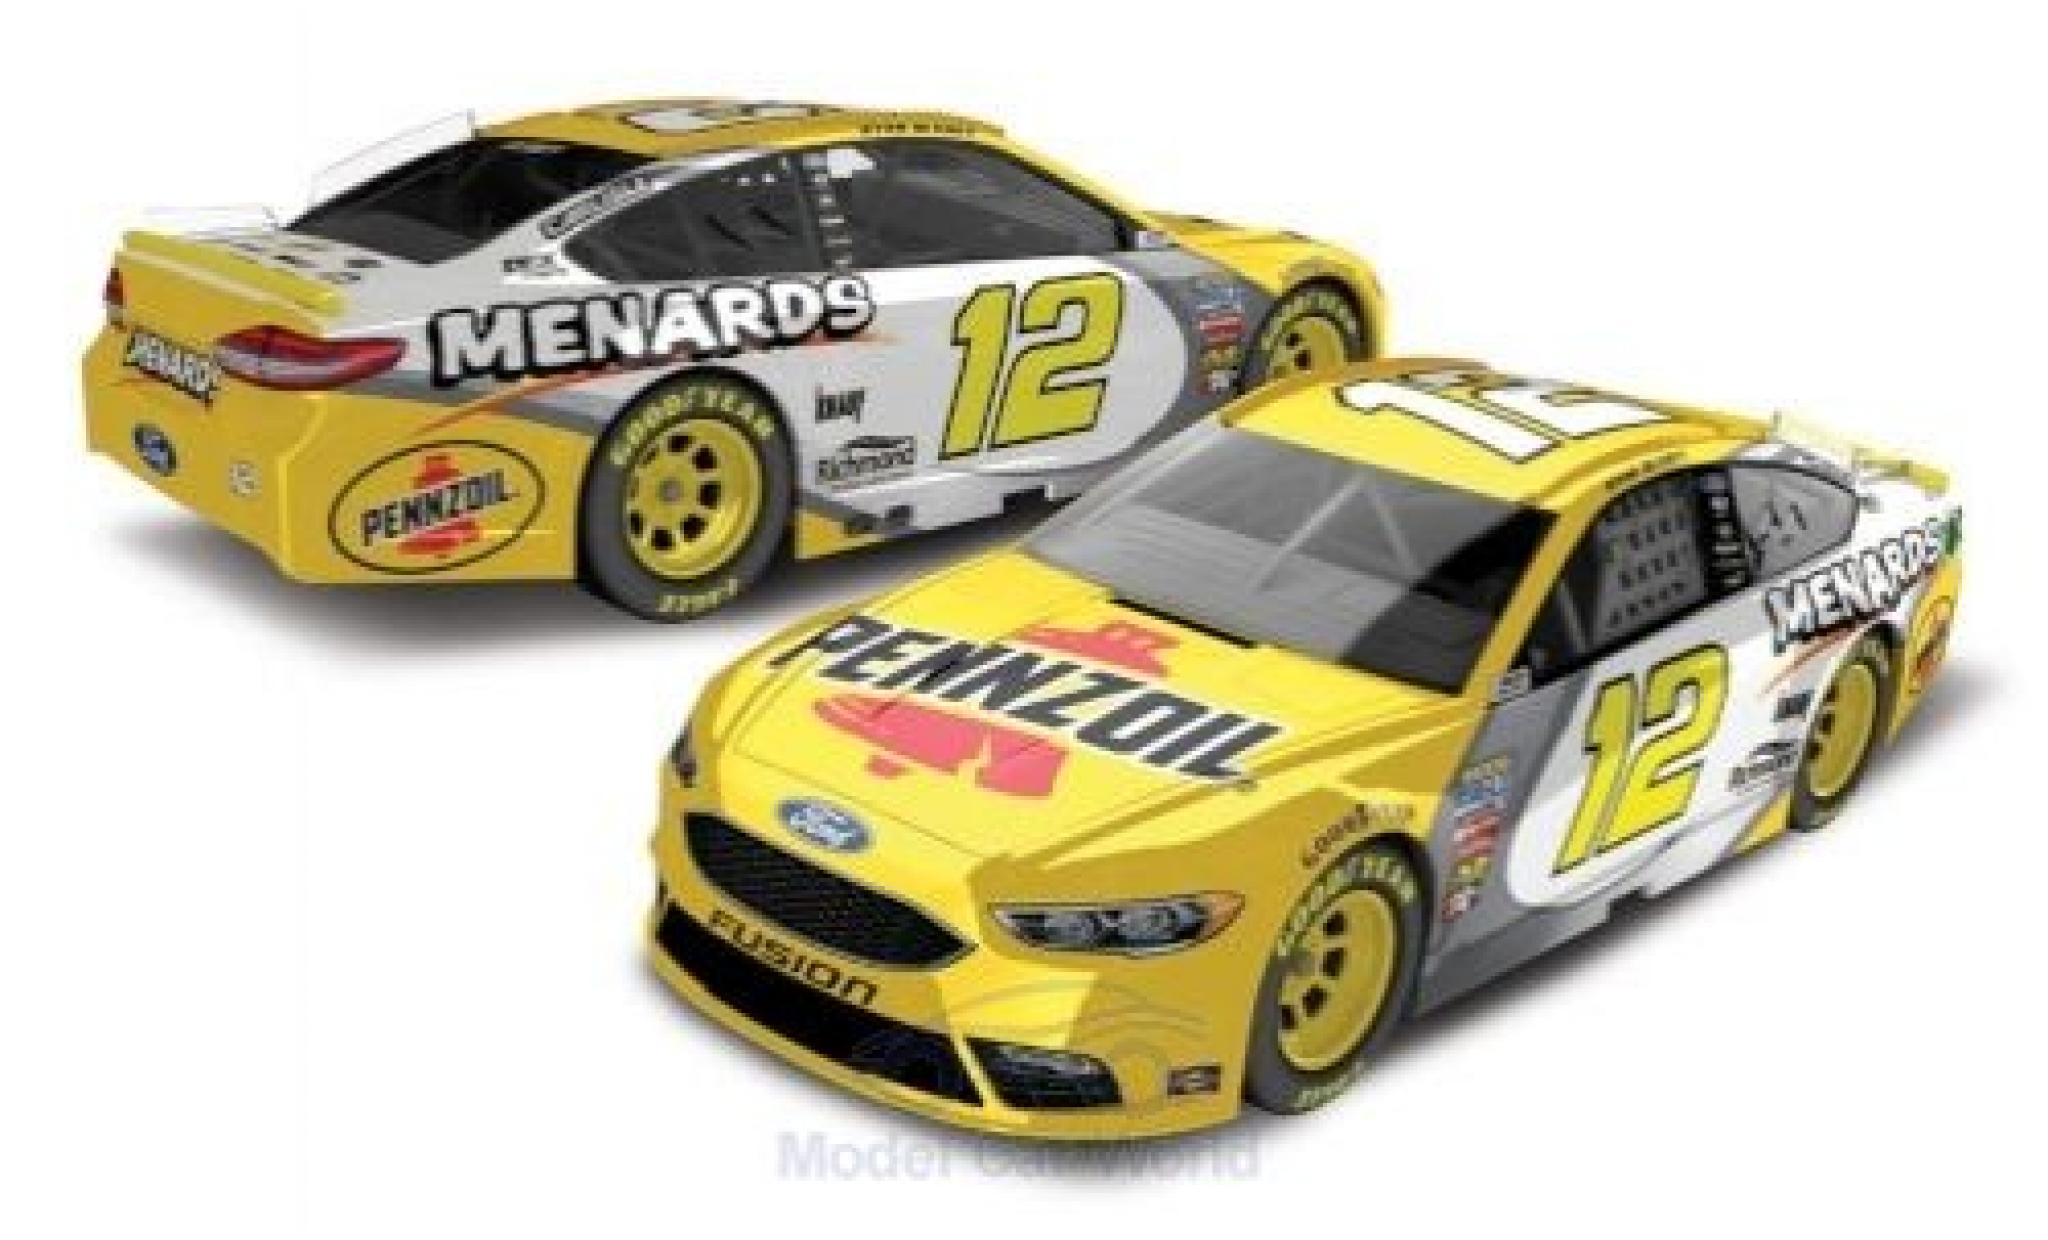 Ford Fusion 1/64 Lionel Racing No.12 Team Penske Pennzoil Nascar 2018 R.Blaney